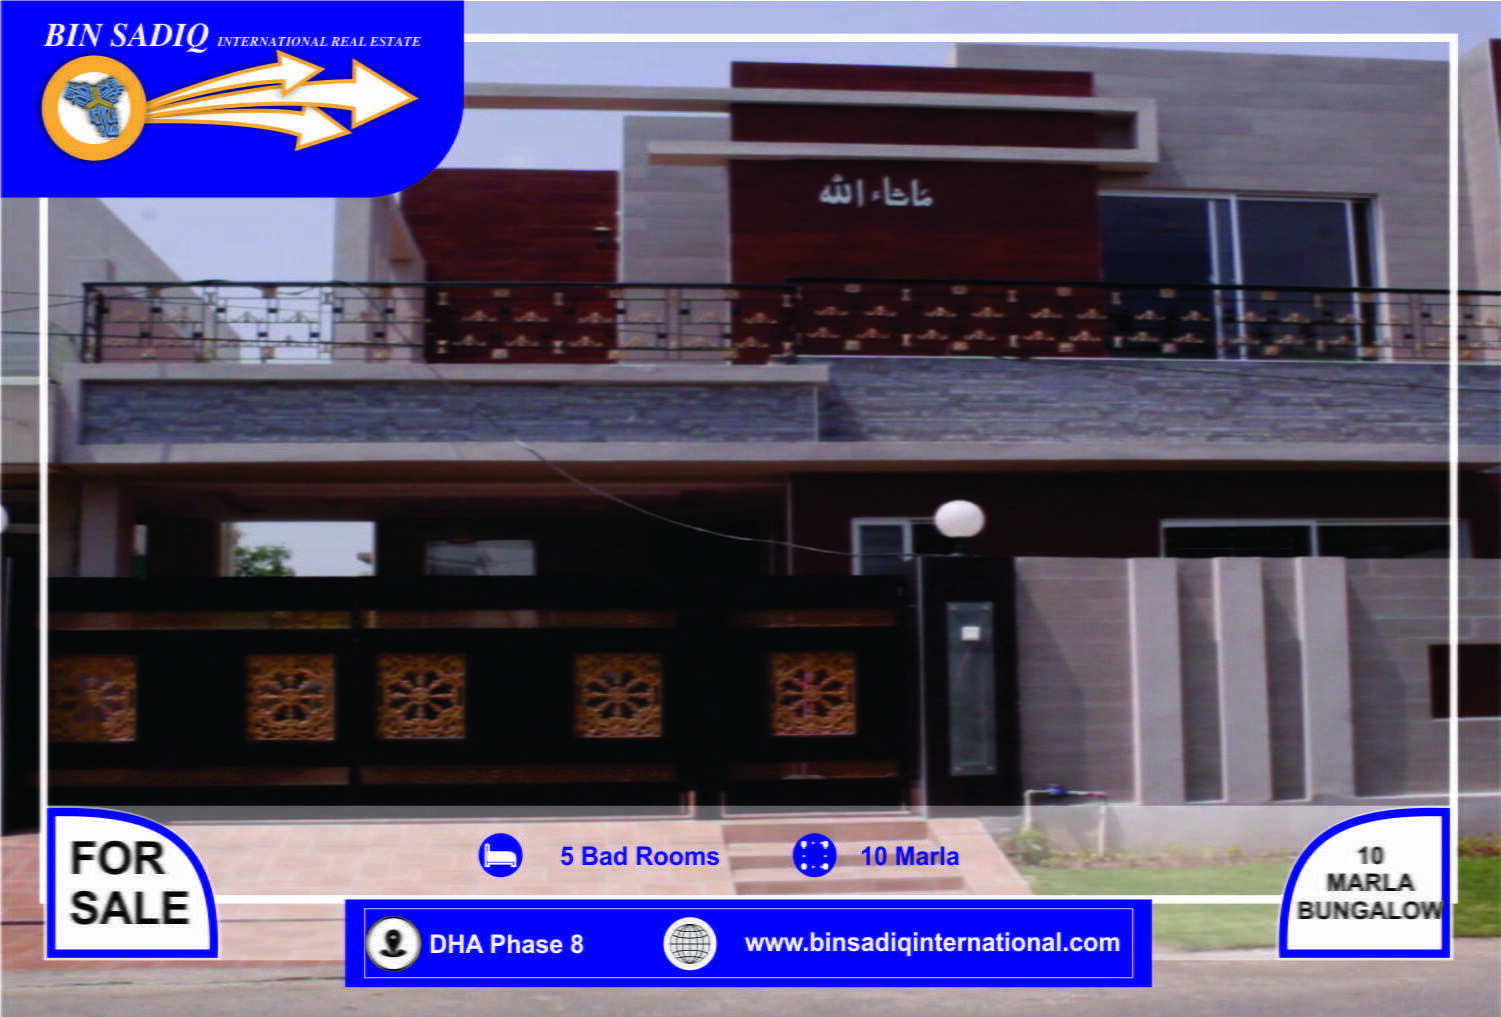 LAHORE EDAN CITY NEAR DHA PHASE 8, 10 MARLA BRAND NEW GALLERIA DESIGN LUXURY BUNGALOW FOR SALE